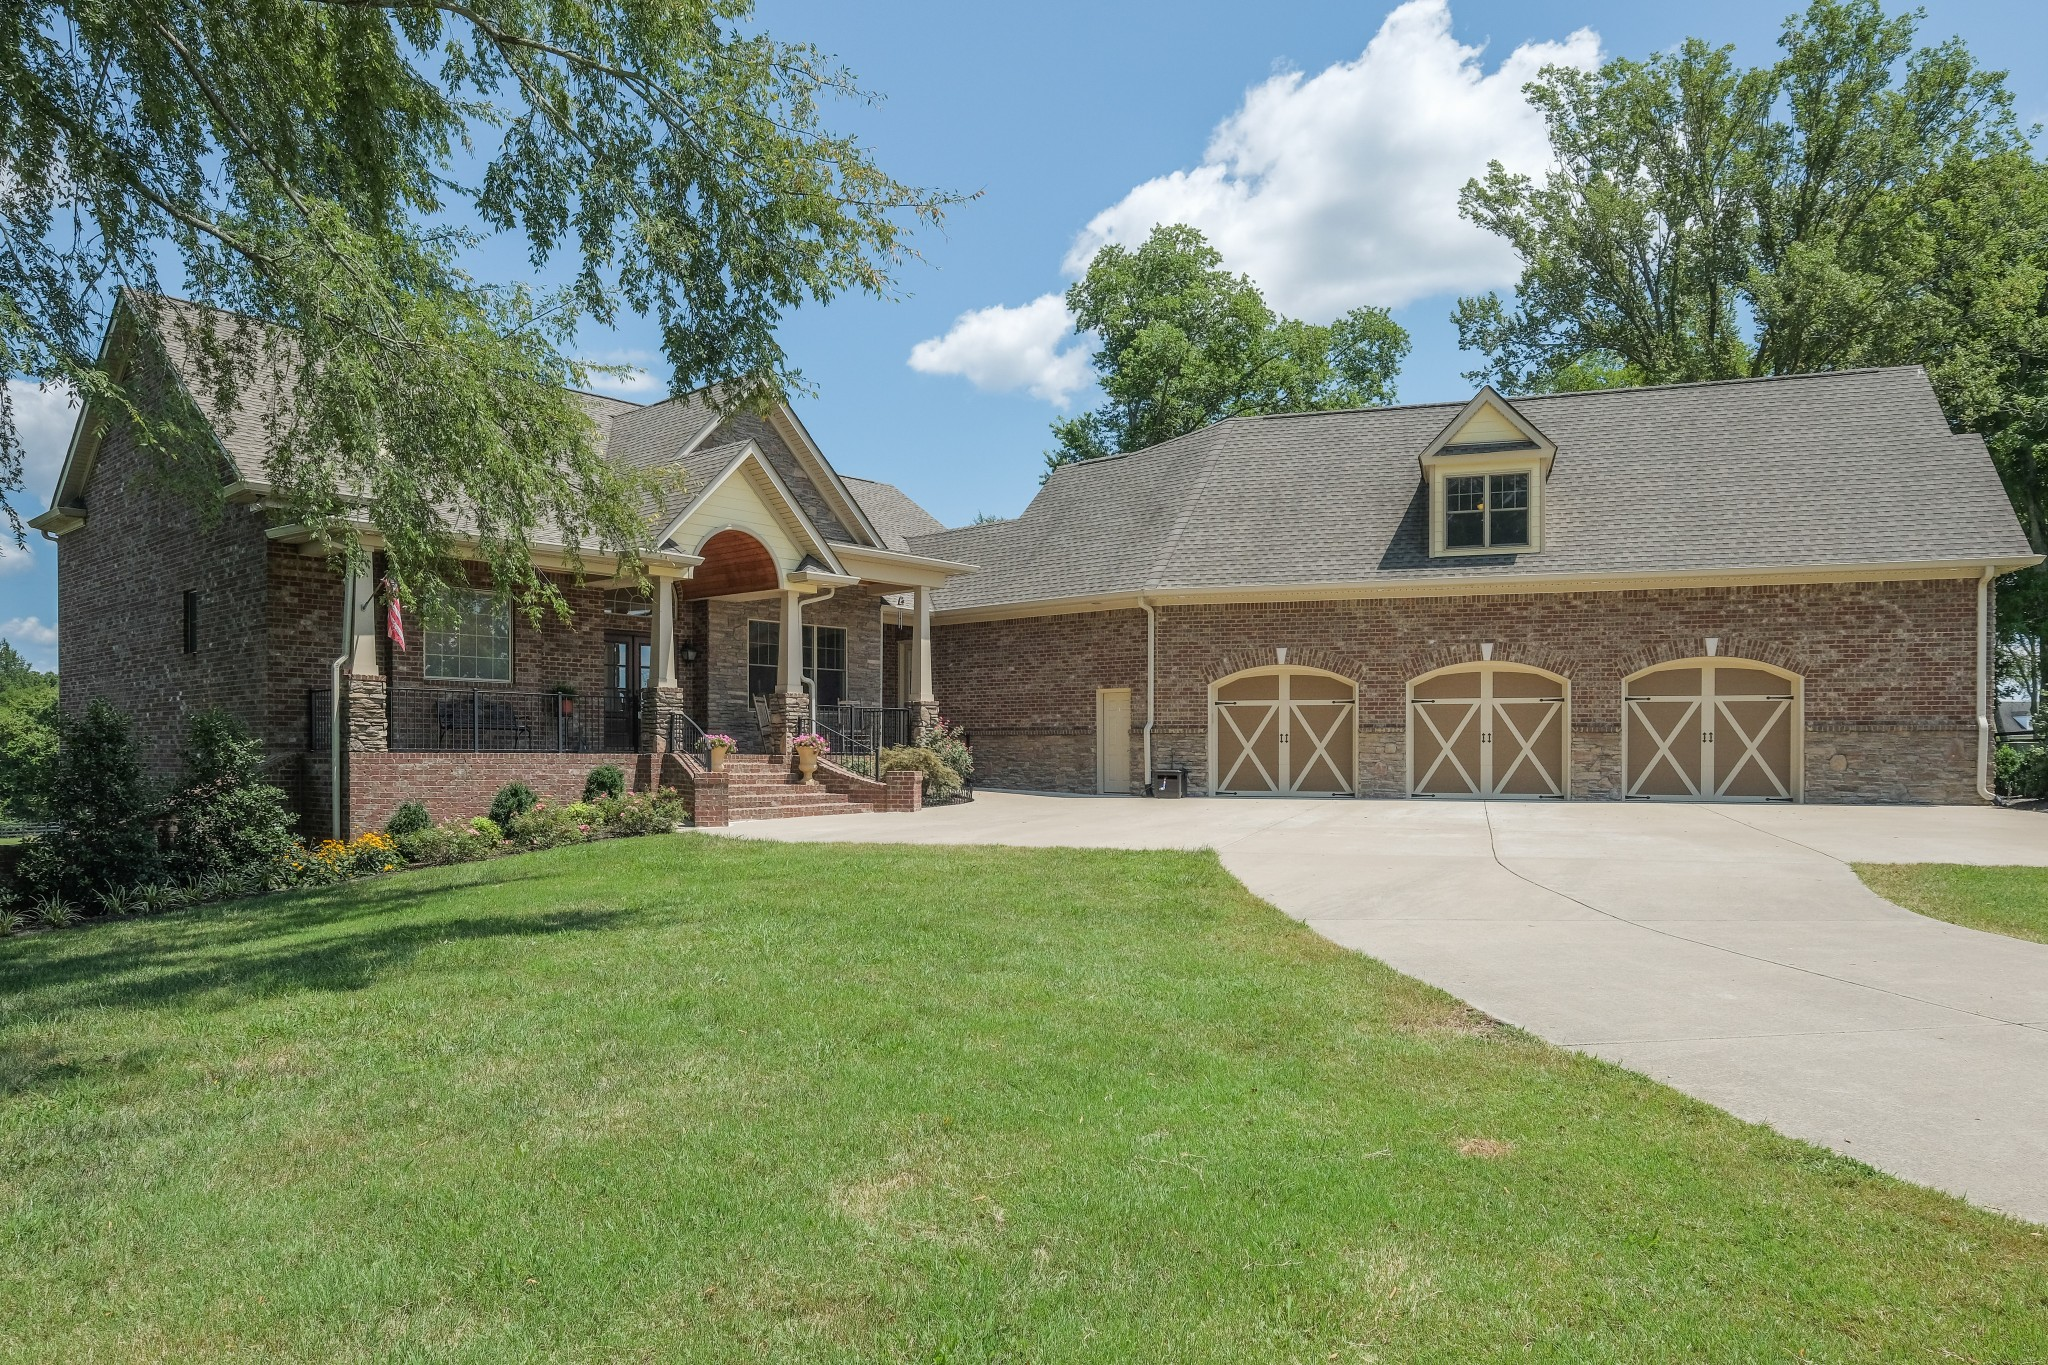 4294 Central Valley Rd, Murfreesboro, TN 37129 - Murfreesboro, TN real estate listing